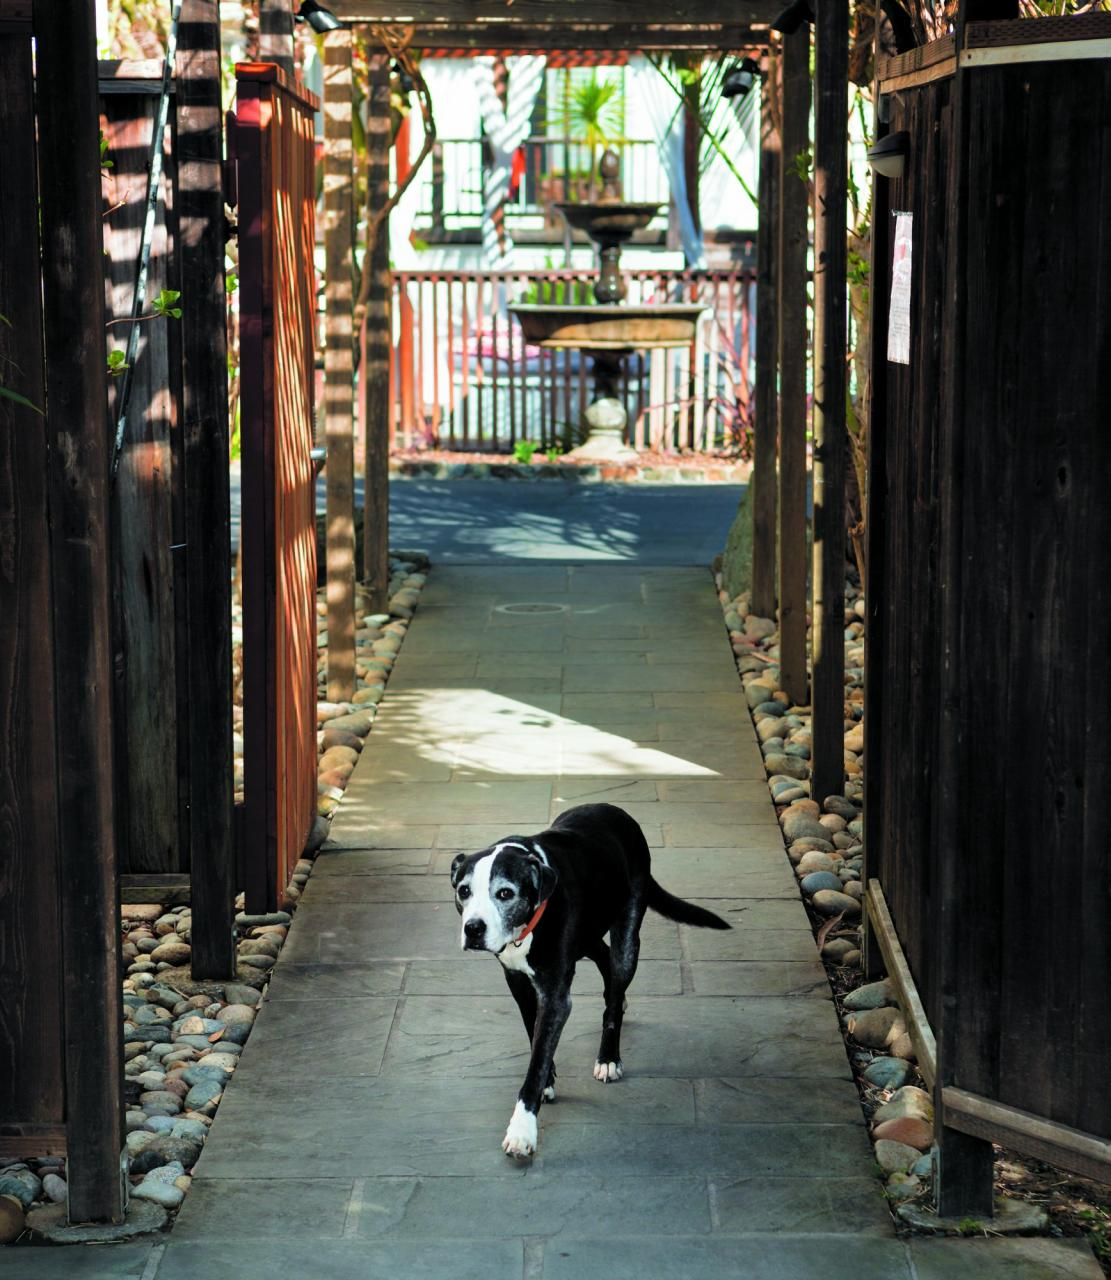 Luedtke's dog, Boon, for whom she named both her restaurant and hotel, walks down the hotel's front entry path.